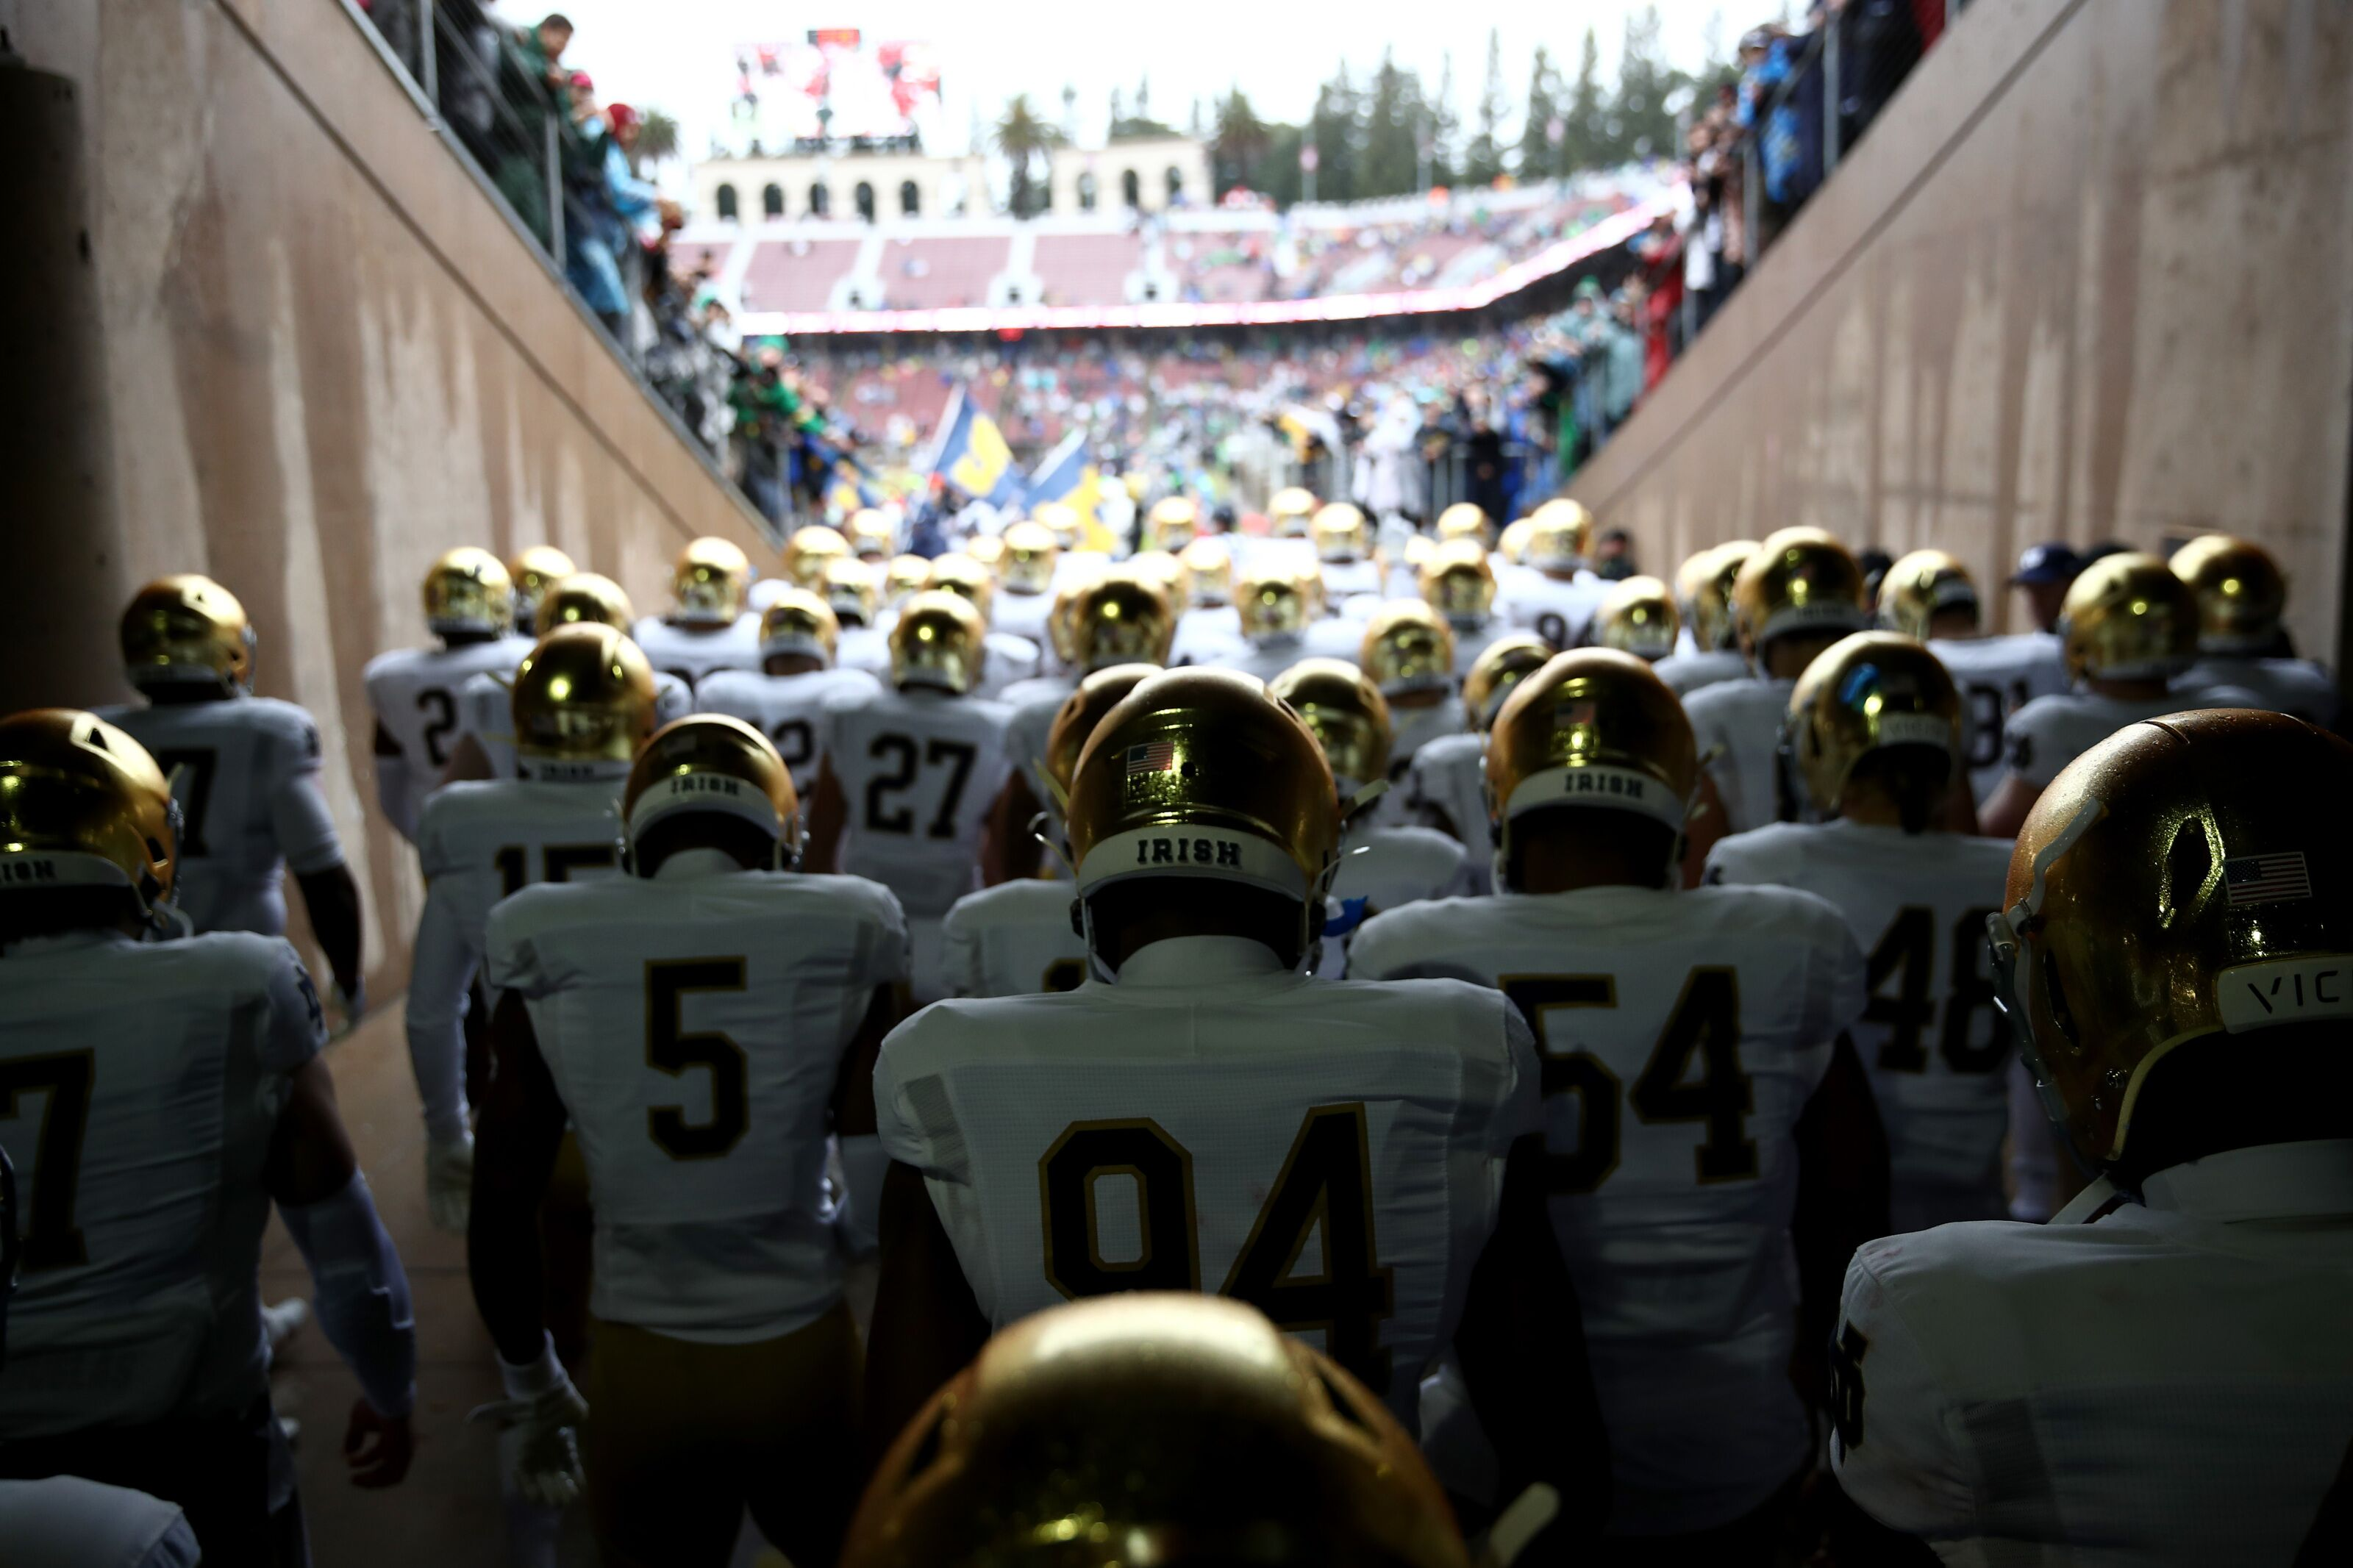 Notre Dame's Convoluted Path to the NY6, and the Argument for the Irish